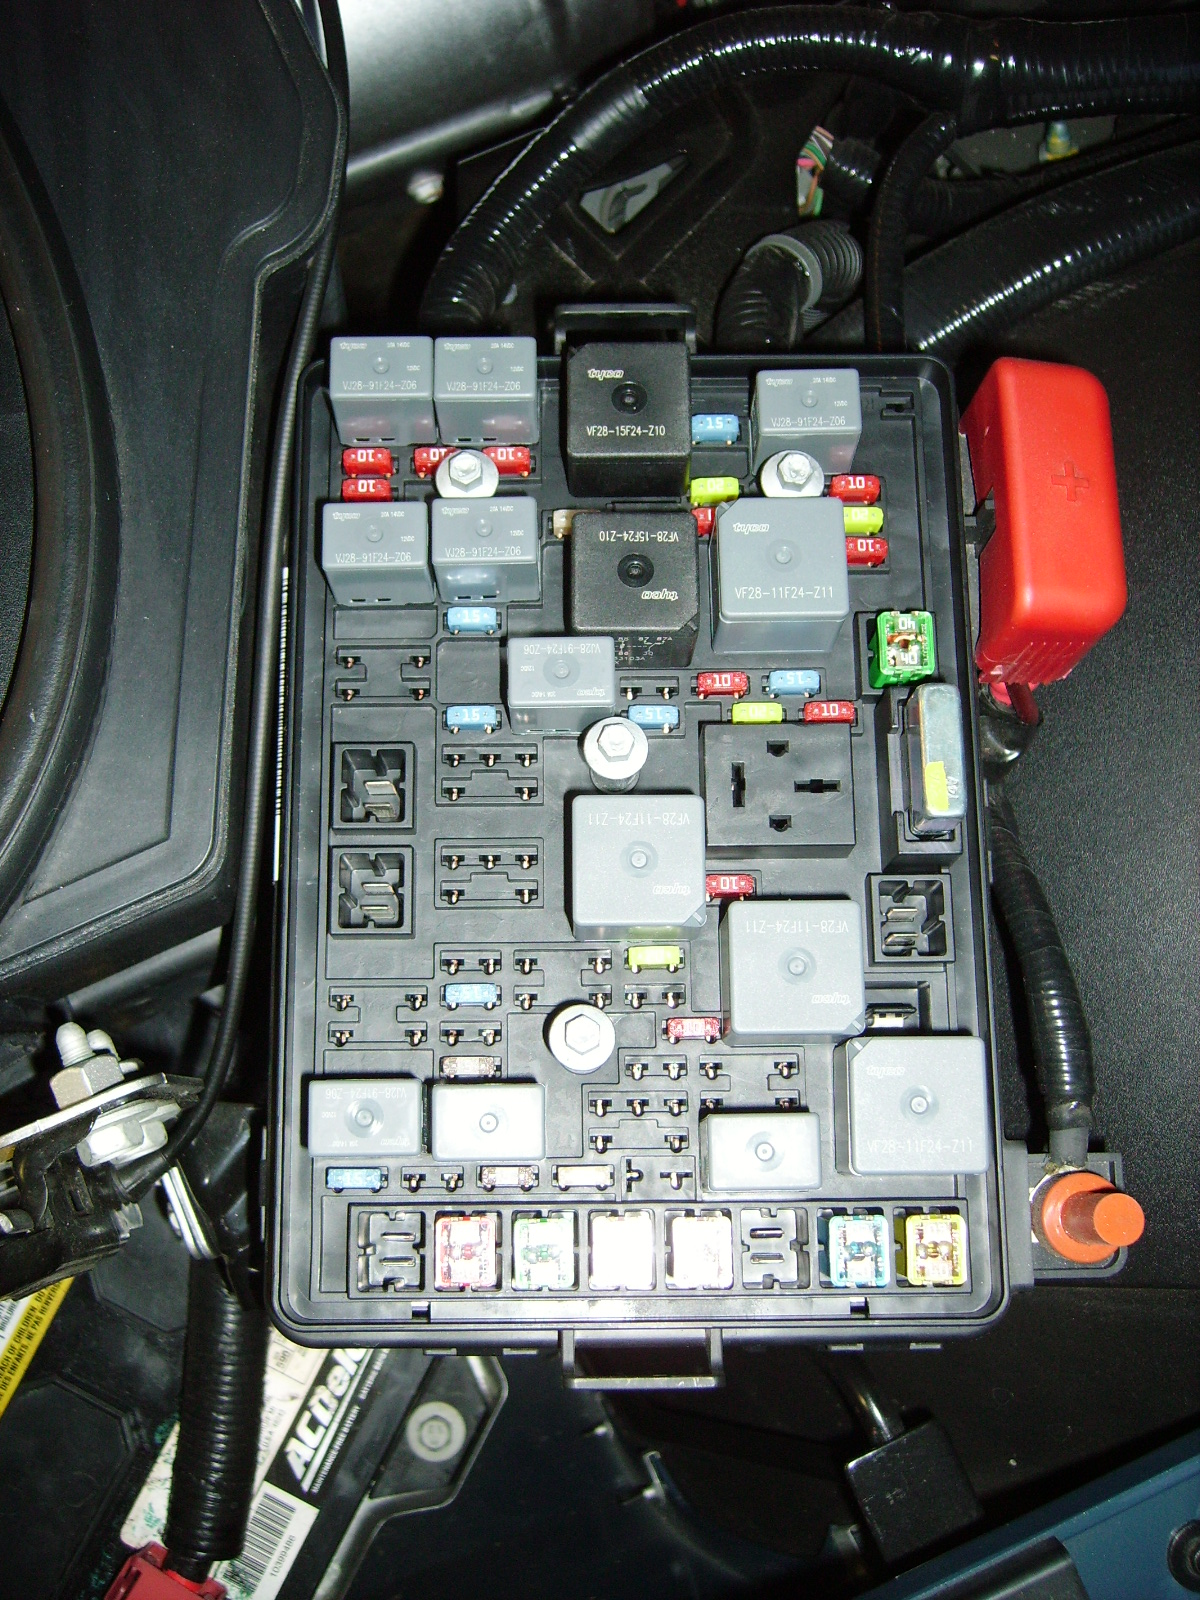 40354d1305120997 reverse light out fuse box under hood reverse light out? saturn sky forums saturn sky forum 2005 Pontiac Vibe Fuse Box at readyjetset.co